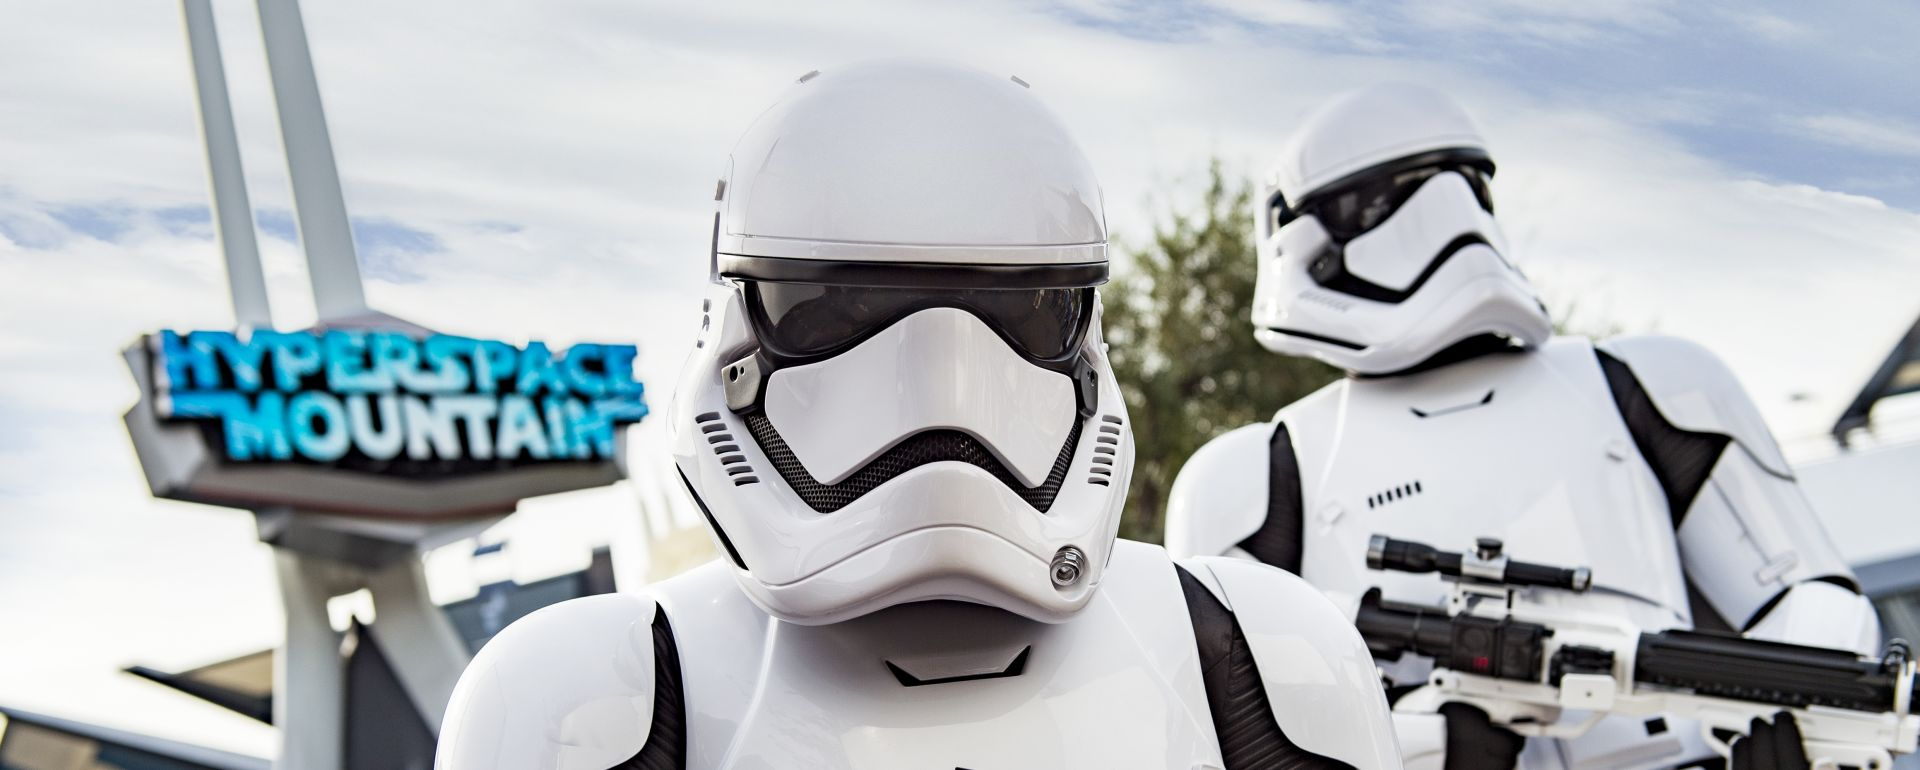 Storm troopers at Disneyland in front of Hyperspace mountain